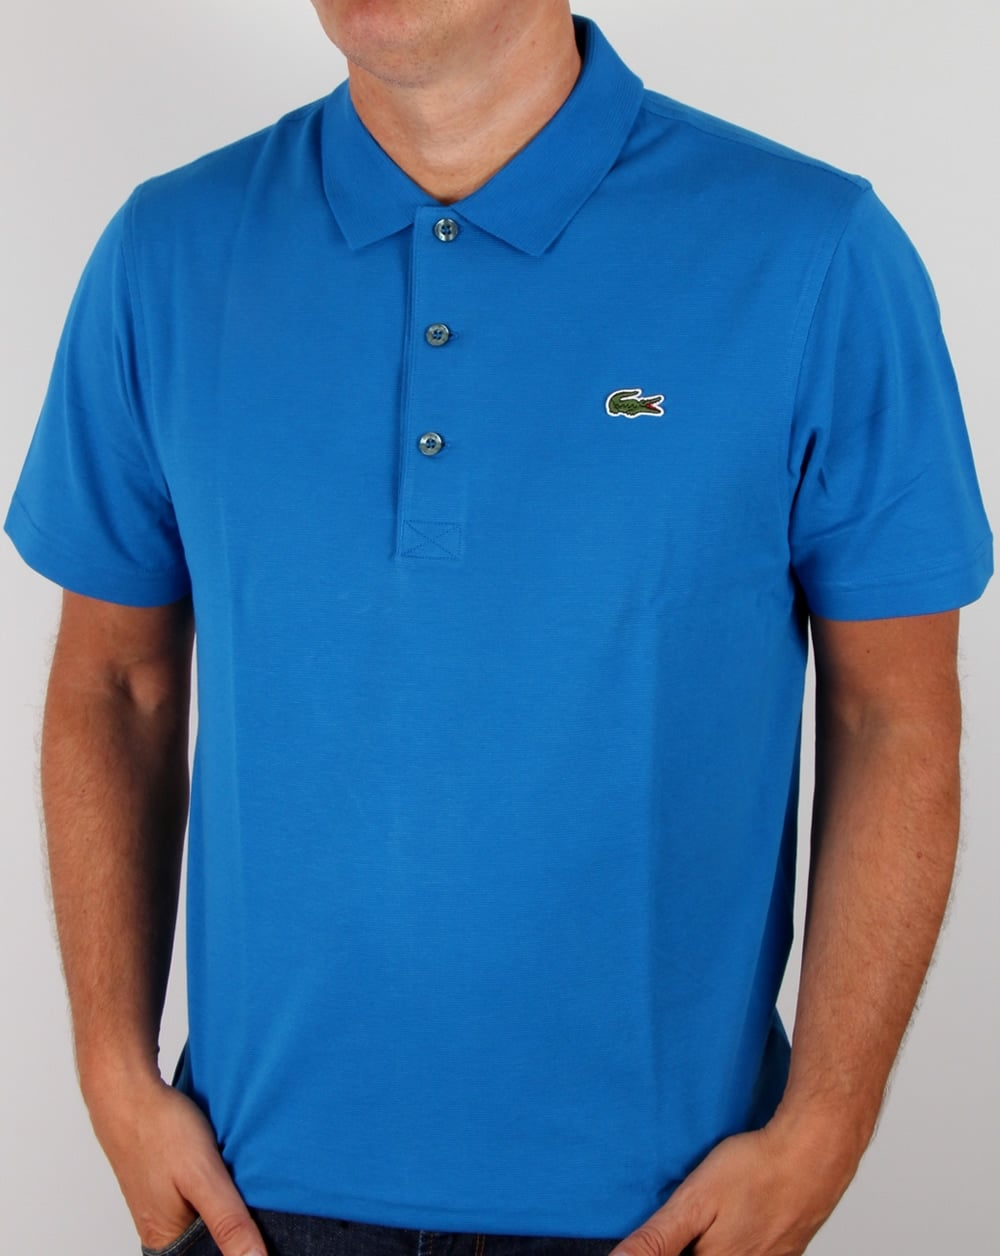 cdd174c0 Lacoste Polo Shirt Ink Blue